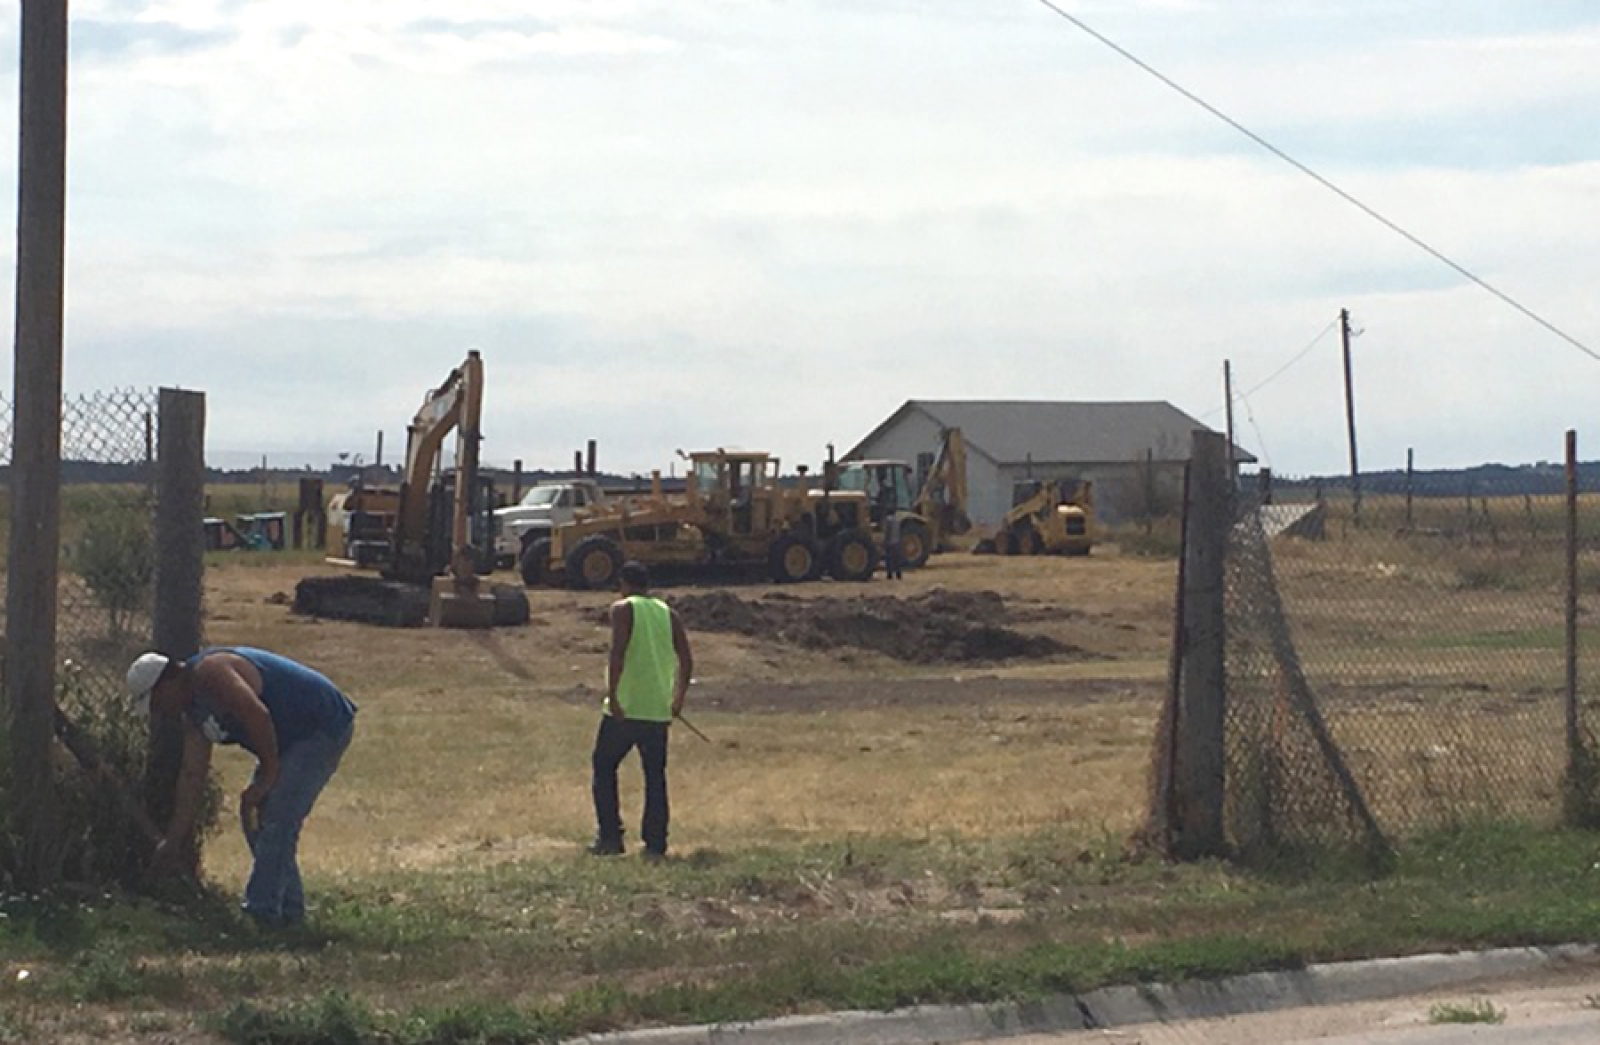 Family Dollar is under construction in Whiteclay